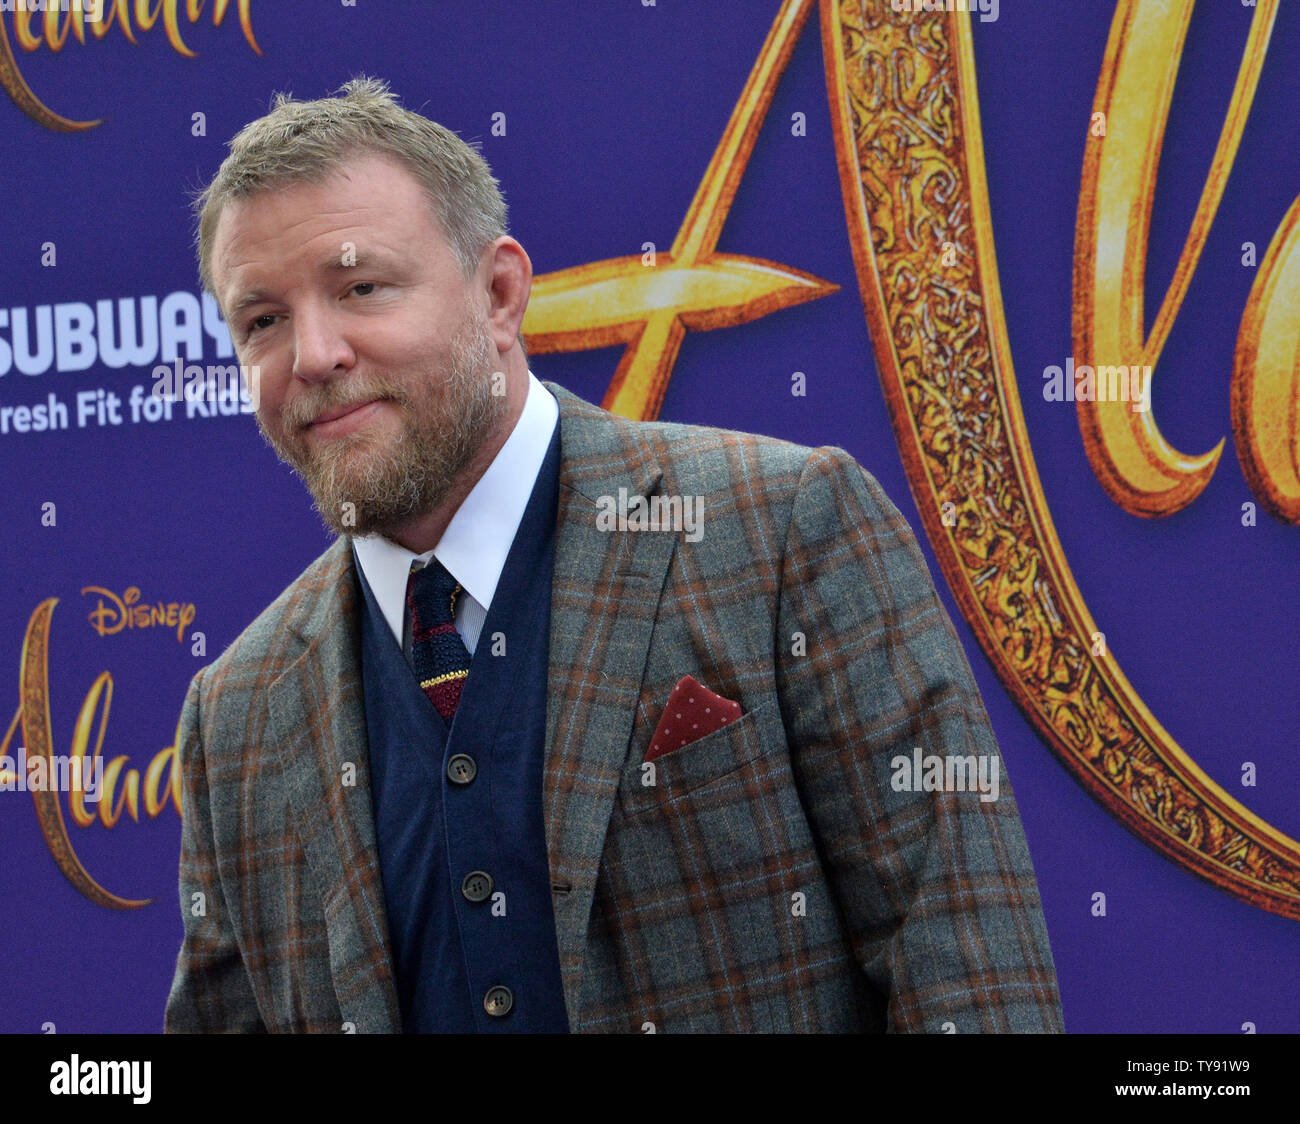 Director Guy Ritchie attends the premiere of the motion picture fantasy 'Aladdin' at the El Capitan Theatre in the Hollywood section of Los Angeles on May 21, 2019. Storyline: A kindhearted street urchin and a power-hungry Grand Vizier vie for a magic lamp that has the power to make their deepest wishes come true.  Photo by Jim Ruymen/UPI - Stock Image